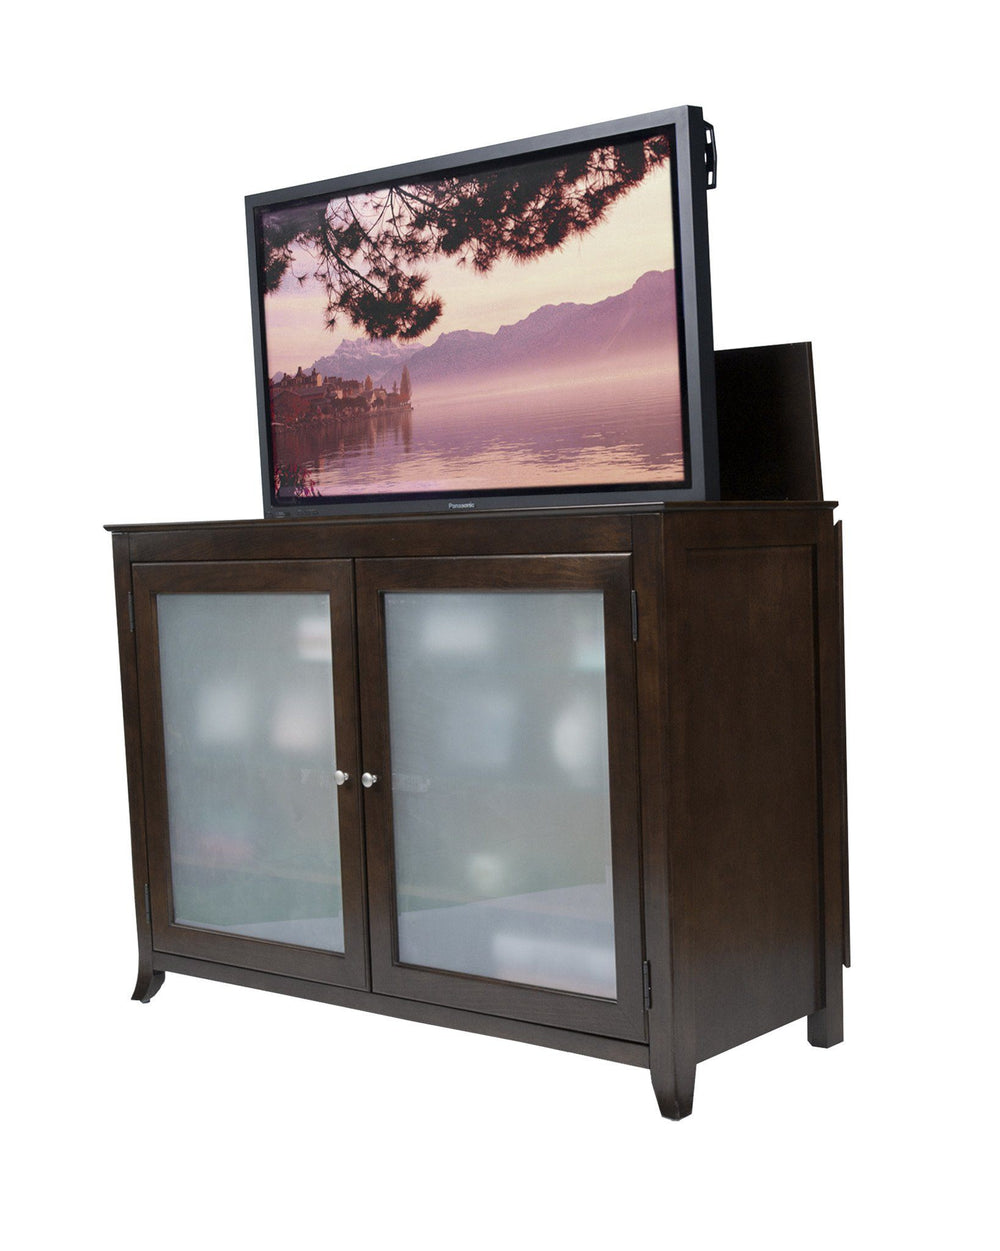 "Touchstone Tuscany Full Size Tv Lift Cabinets For Up To 60"" Flat Screen Tv'S Tv Lift Cabinets Touchstone"